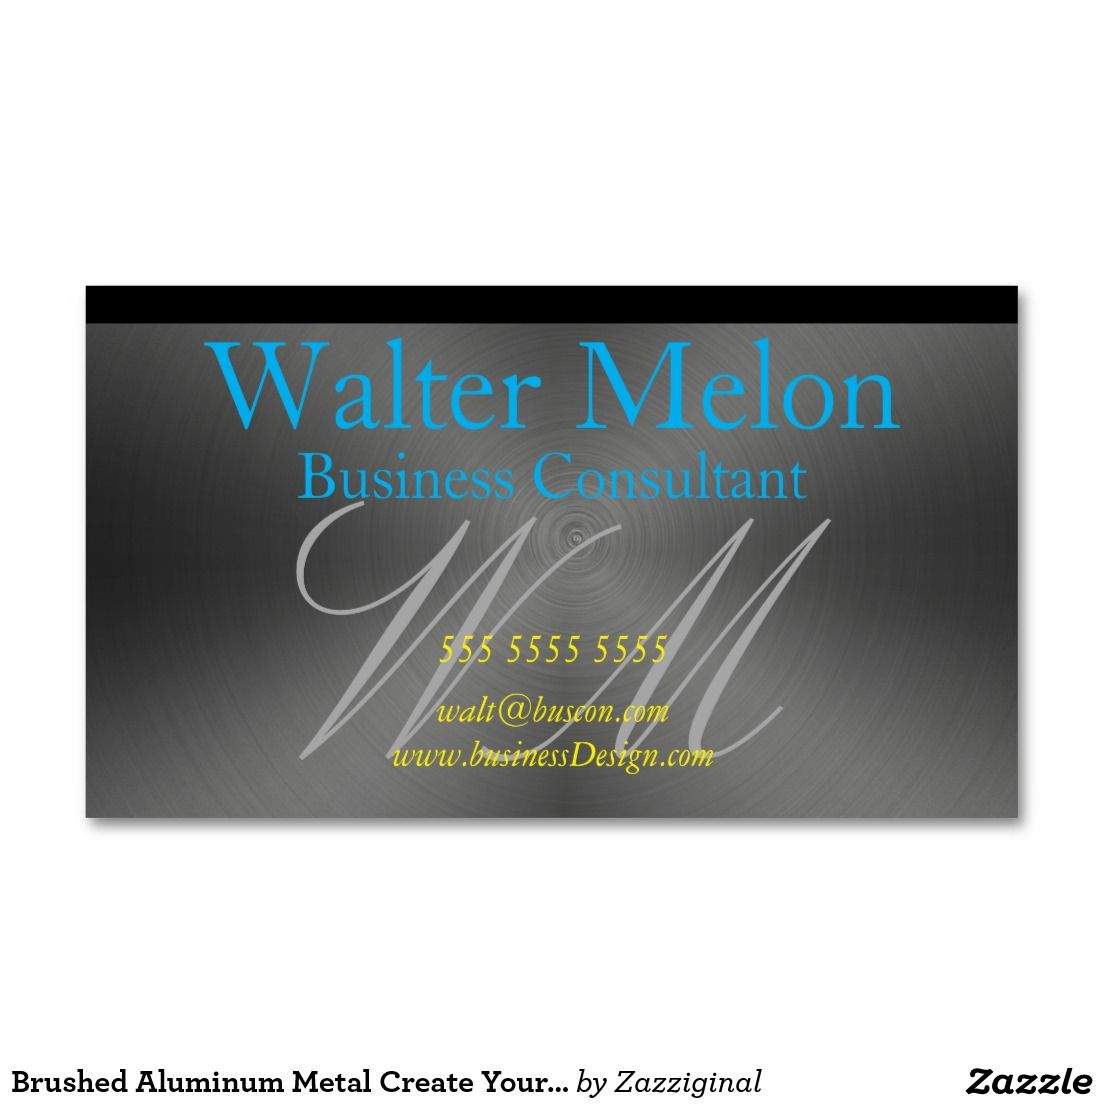 Brushed Aluminum Metal Create Your Own Consultant Business Card ...